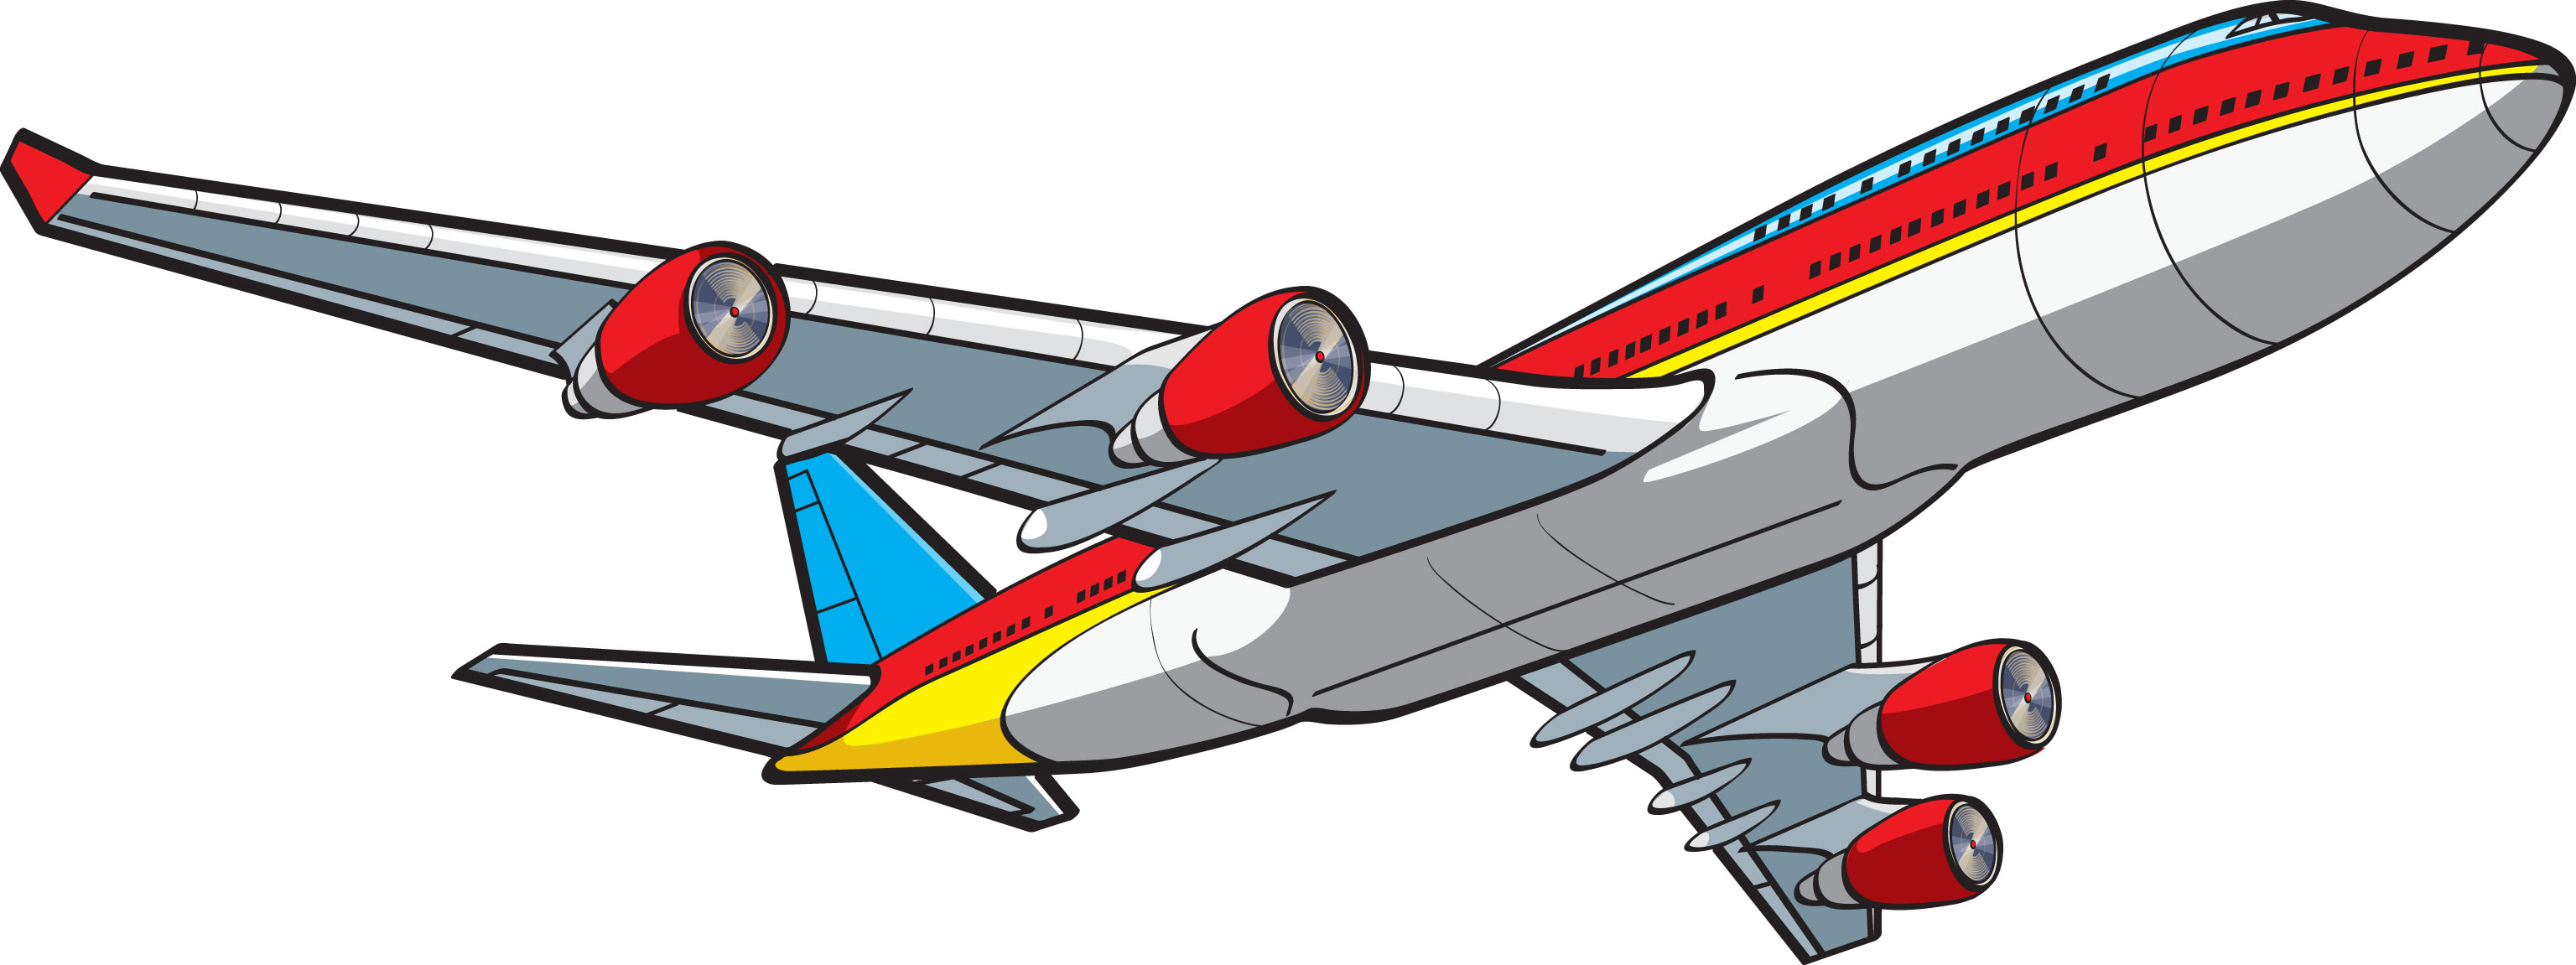 Free Cartoon Airplane Clipart, Download Free Clip Art, Free.